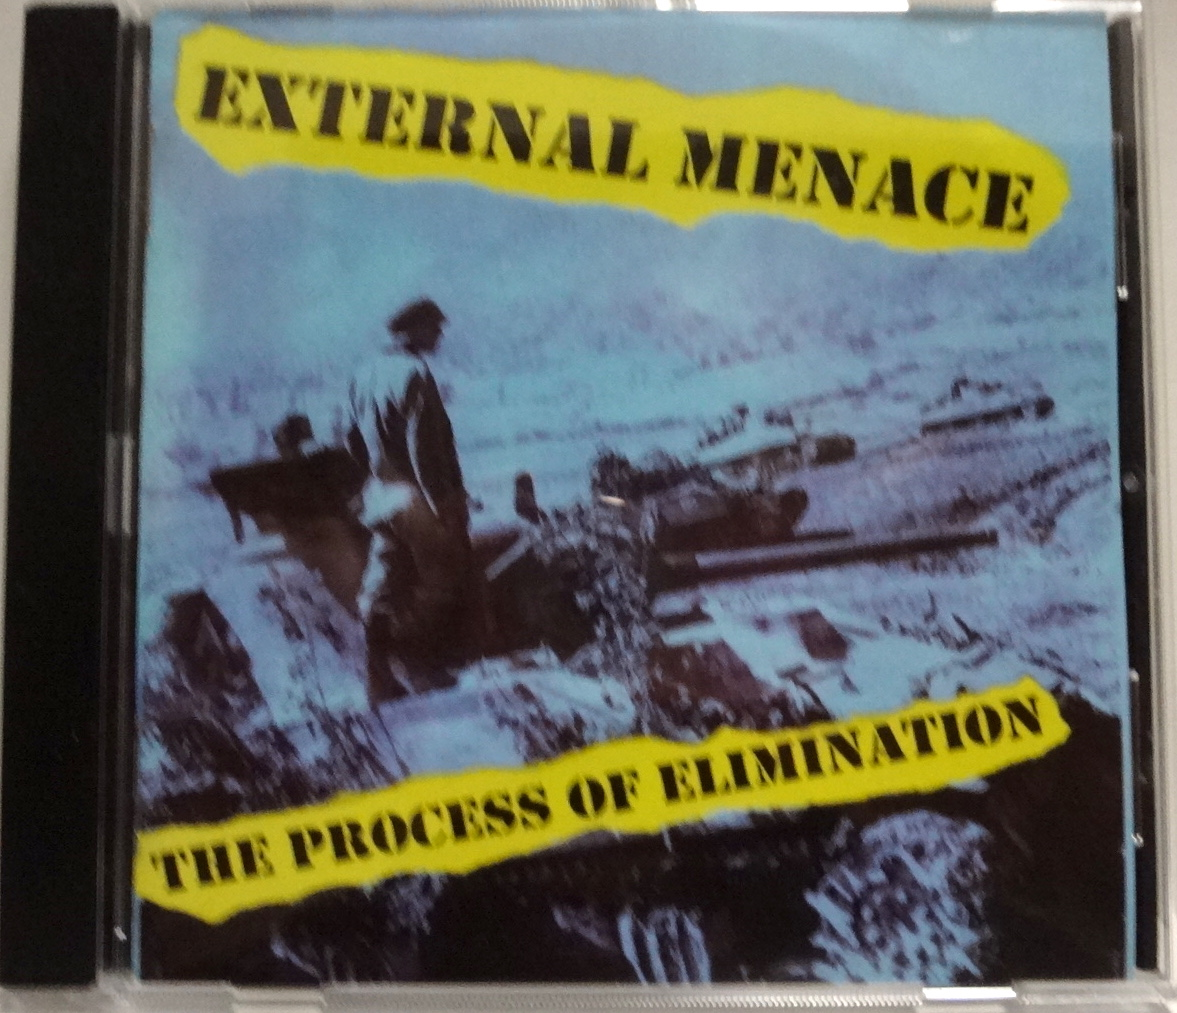 External Menace The Process Of Elimination (1998) 編集盤CD Dr. Strange Records UK82/Discharge/The Exploited/Blitz/The Partisans_画像1